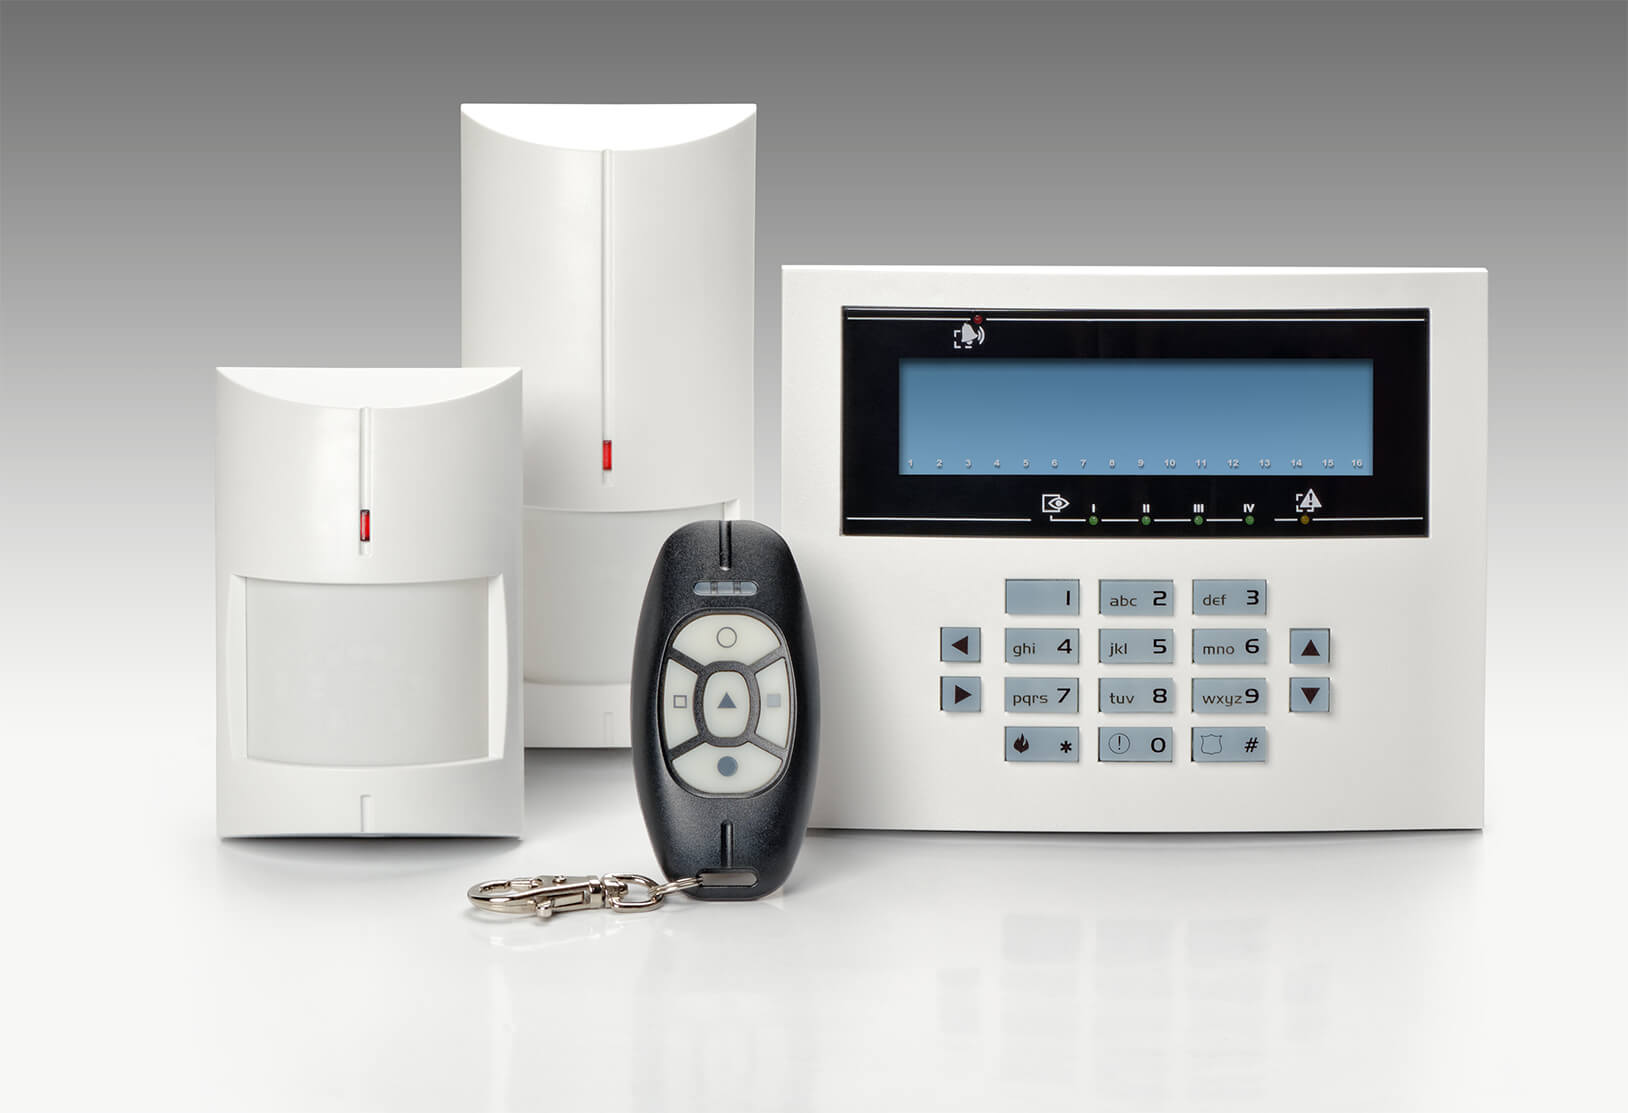 Business & Residential NSI / NACOSS Approved Burglar Alarms In Highams Park E4 - Local Highams Park E4 security company.Call 02078872244 - Dedicated to Safety & Security. Companies, shops and homes ..